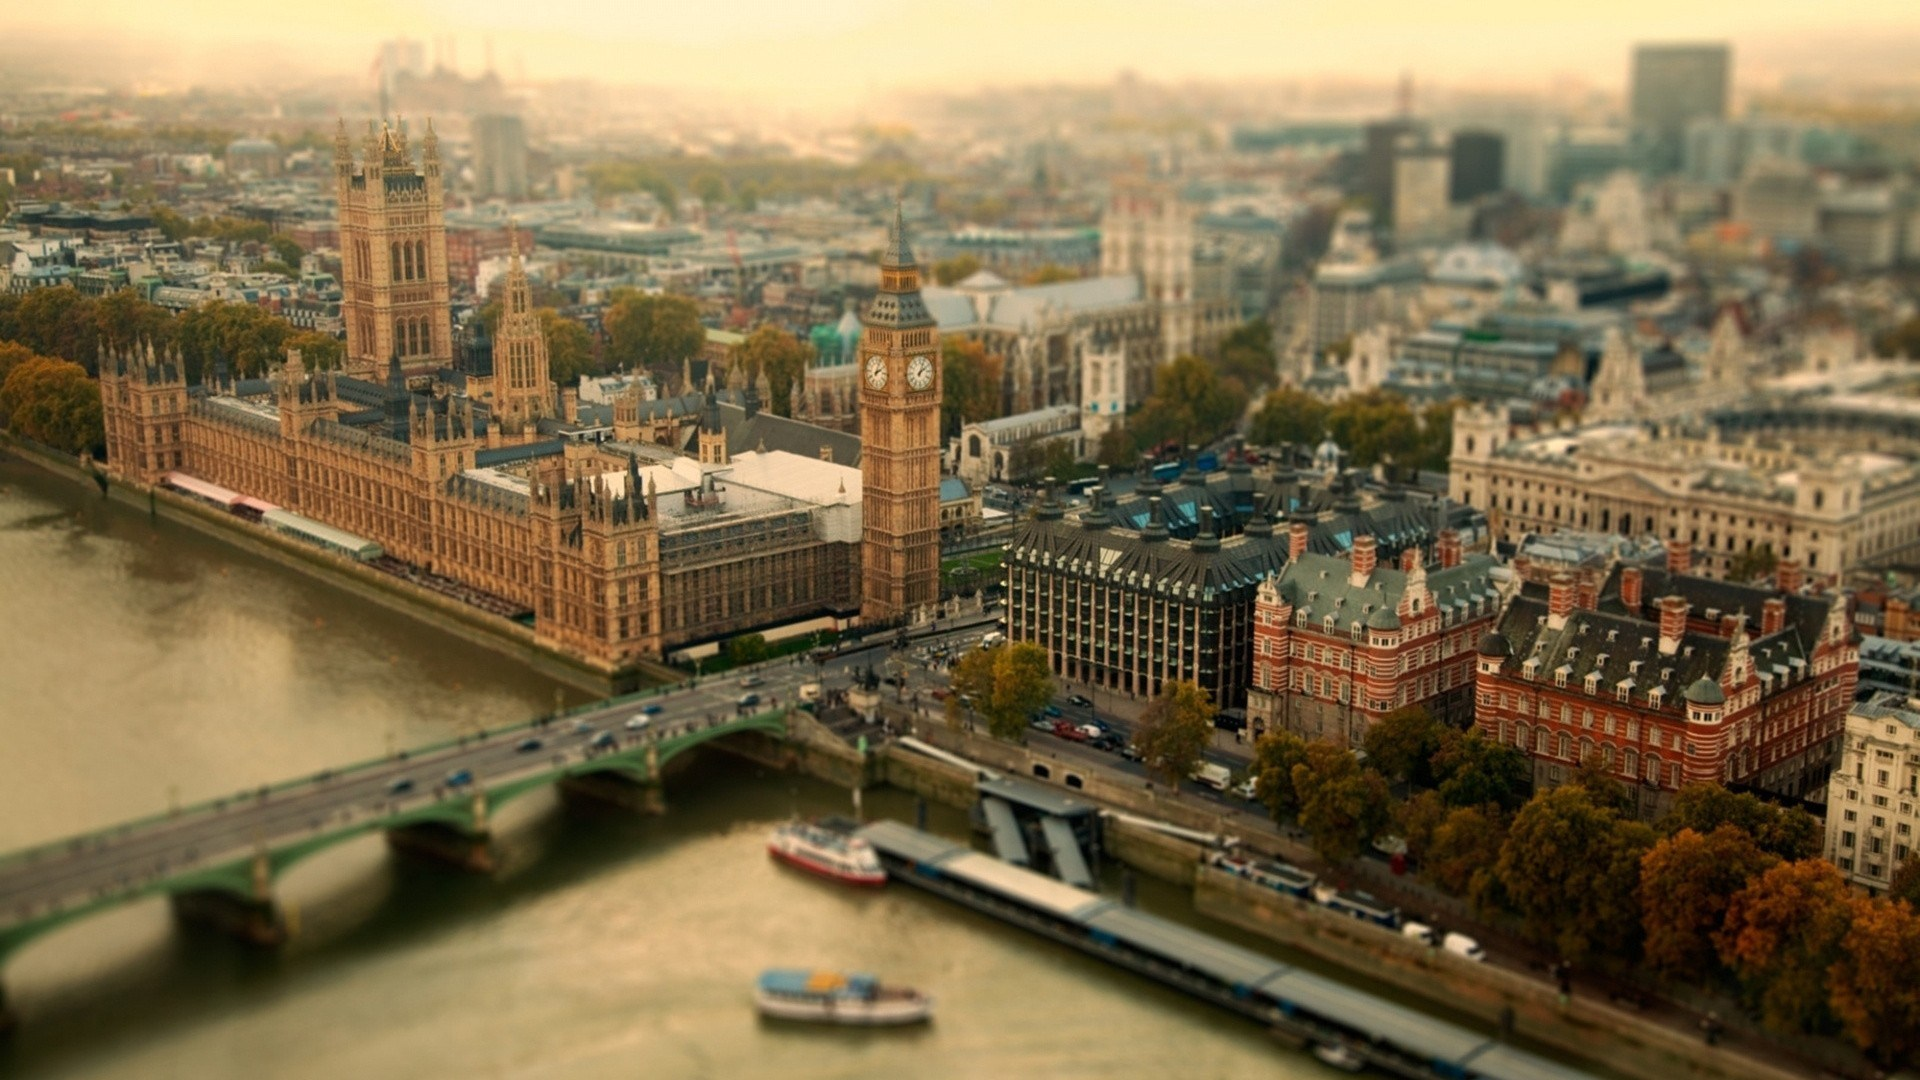 UK_london-uk-river-bridge-big-ben-photo-wallpaper-1920x1080